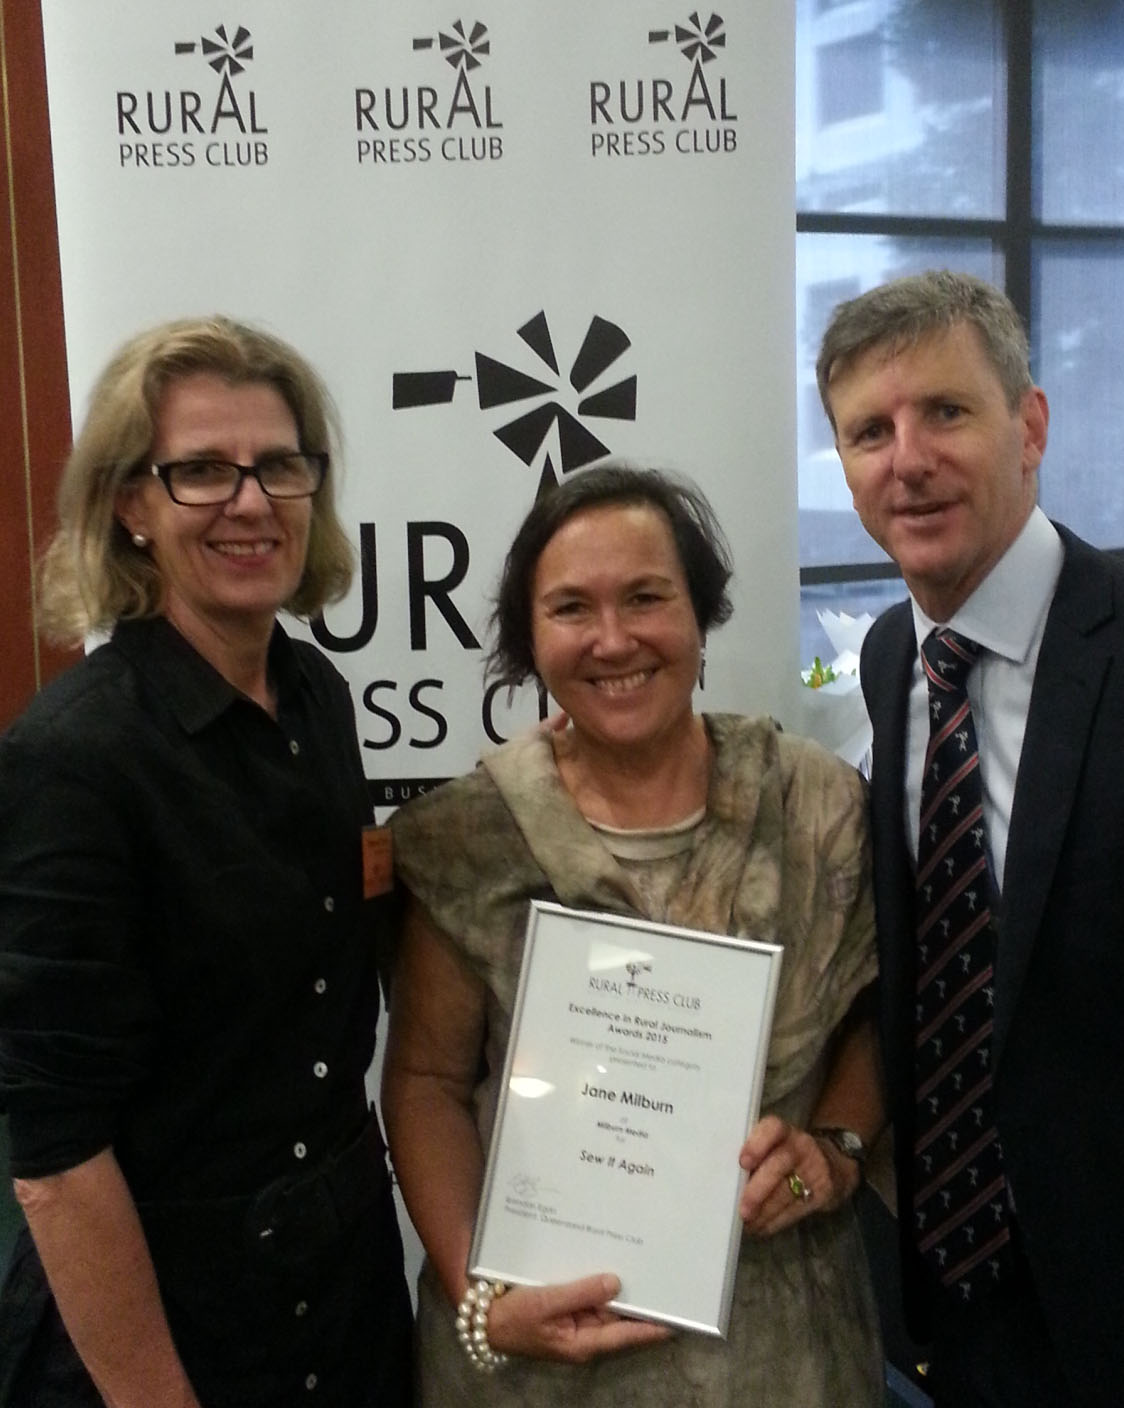 Social Media Award winner Jane Milburn with co-ordinator Edwina Close and Rural Press Club president Brendan Egan